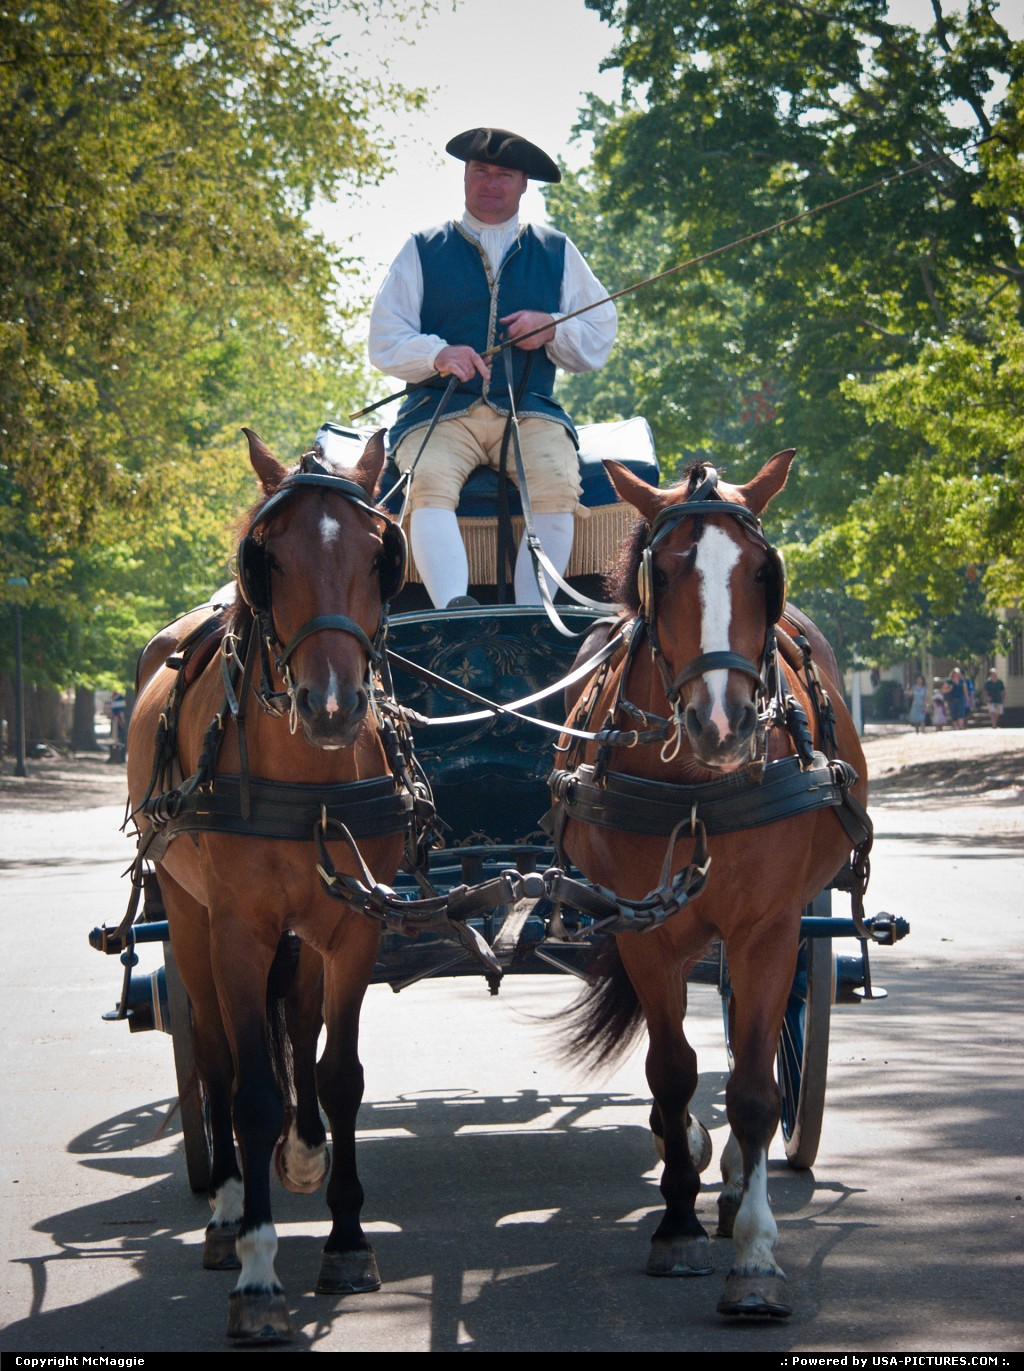 Picture by McMaggie: Williamsburg Virginia   horses, carriage, carriage driver, horse-drawn carriage, Colonial Williamsburg, Williamsburg, Virginia, summer, July, living history museum, living history, museum, historic site, Duke of Gloucester Street, colonial history, Virginia history